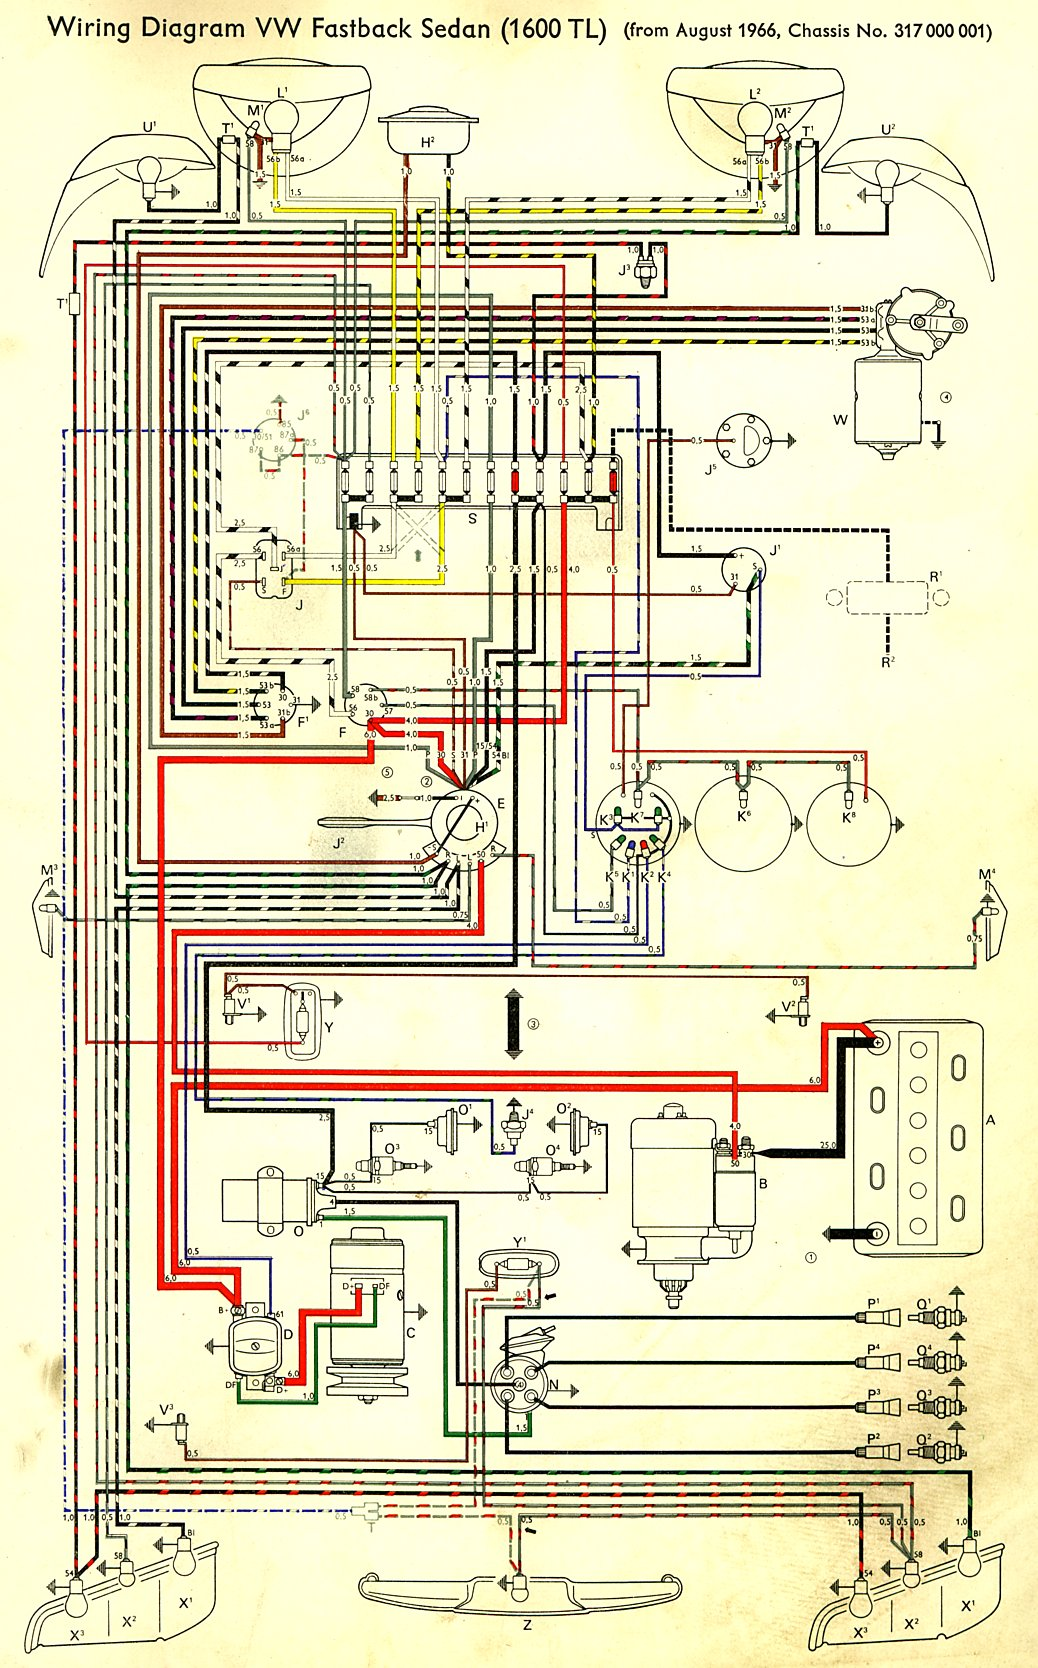 type3_1600TL_67 vw bus wiring diagram 1965 vw bus wiring diagram \u2022 wiring diagrams 1965 vw bus wiring harness at cos-gaming.co